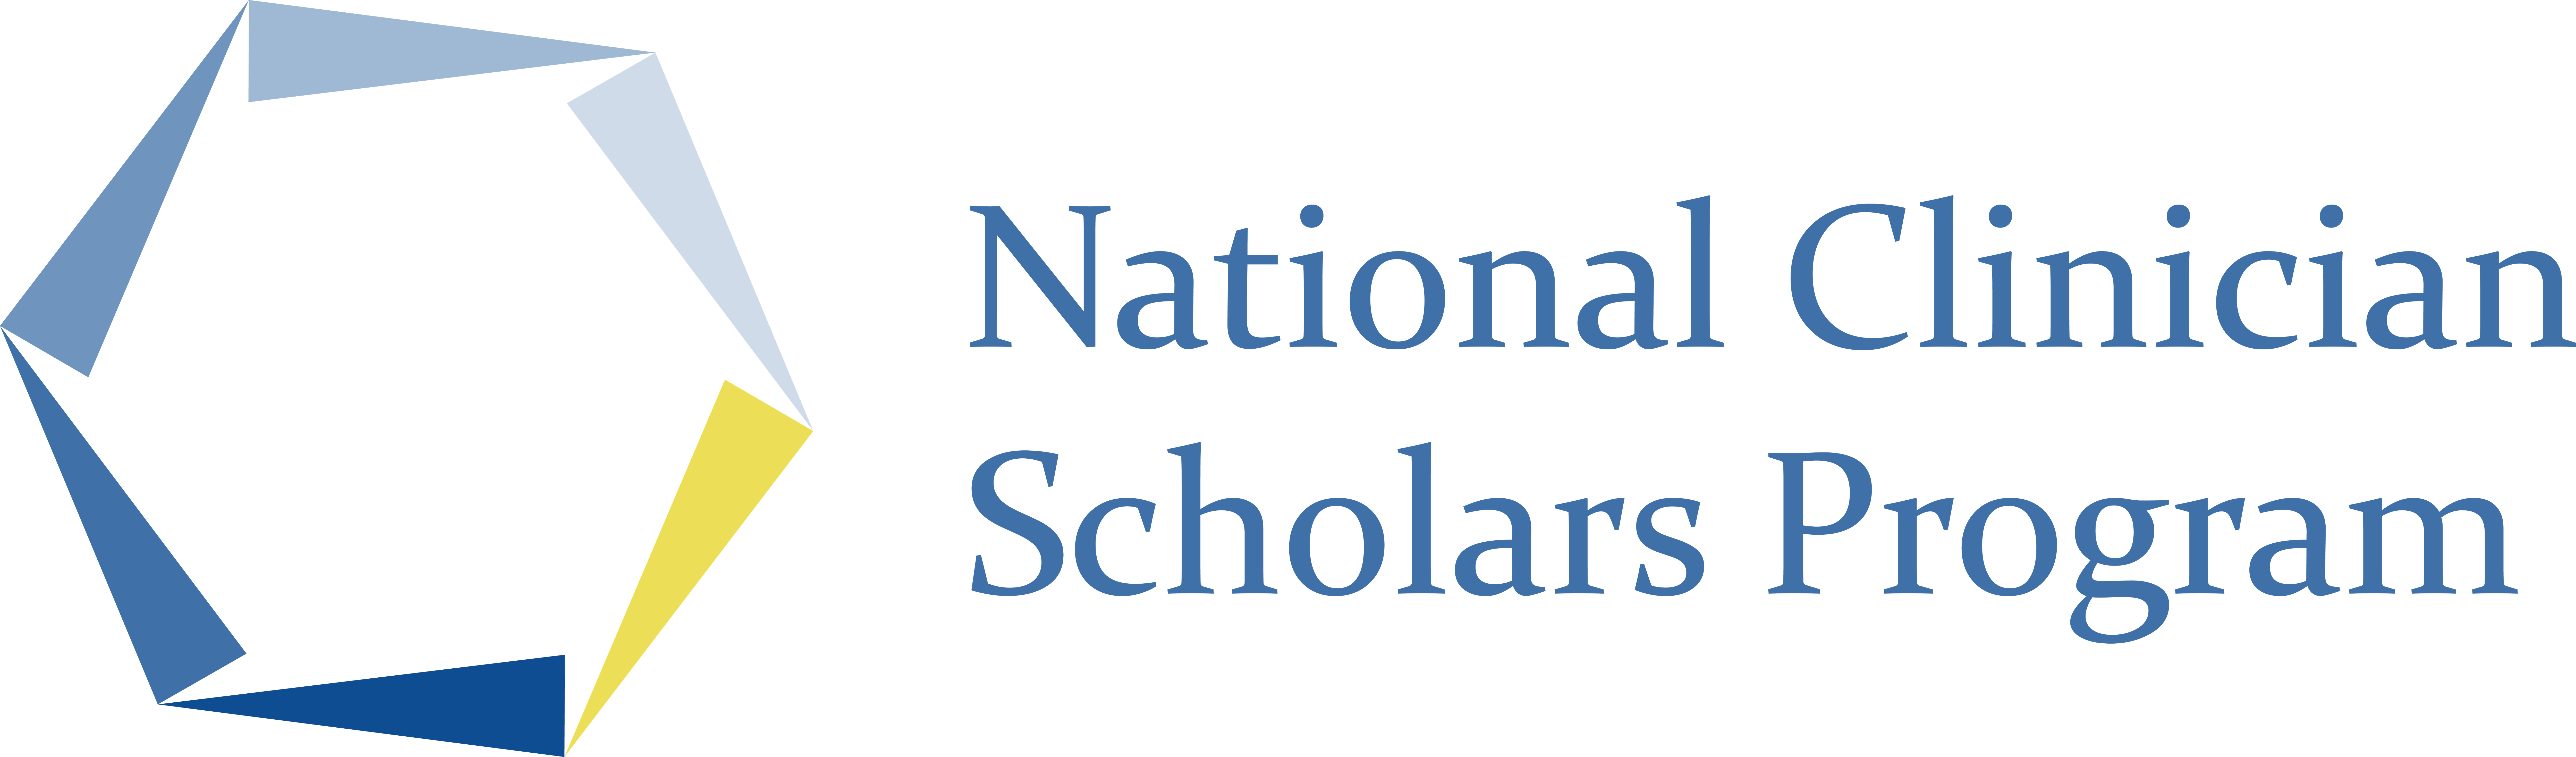 National Clinician Scholars Program 2018 Annual Meeting